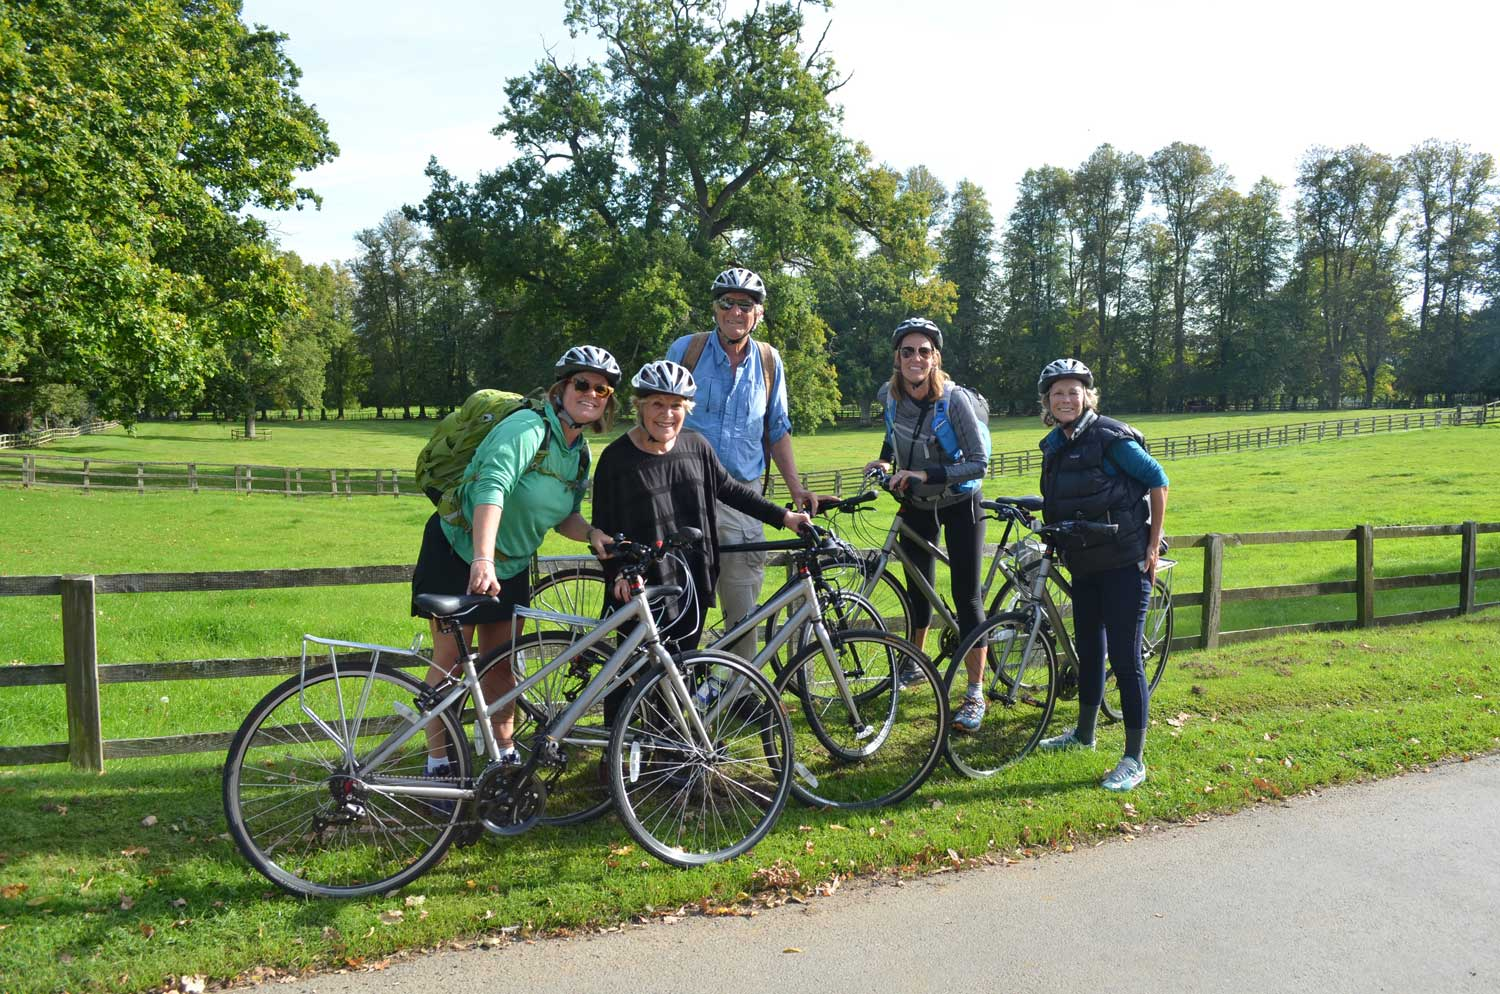 Guided cotswolds cycling tours- Cycle the Cotswolds